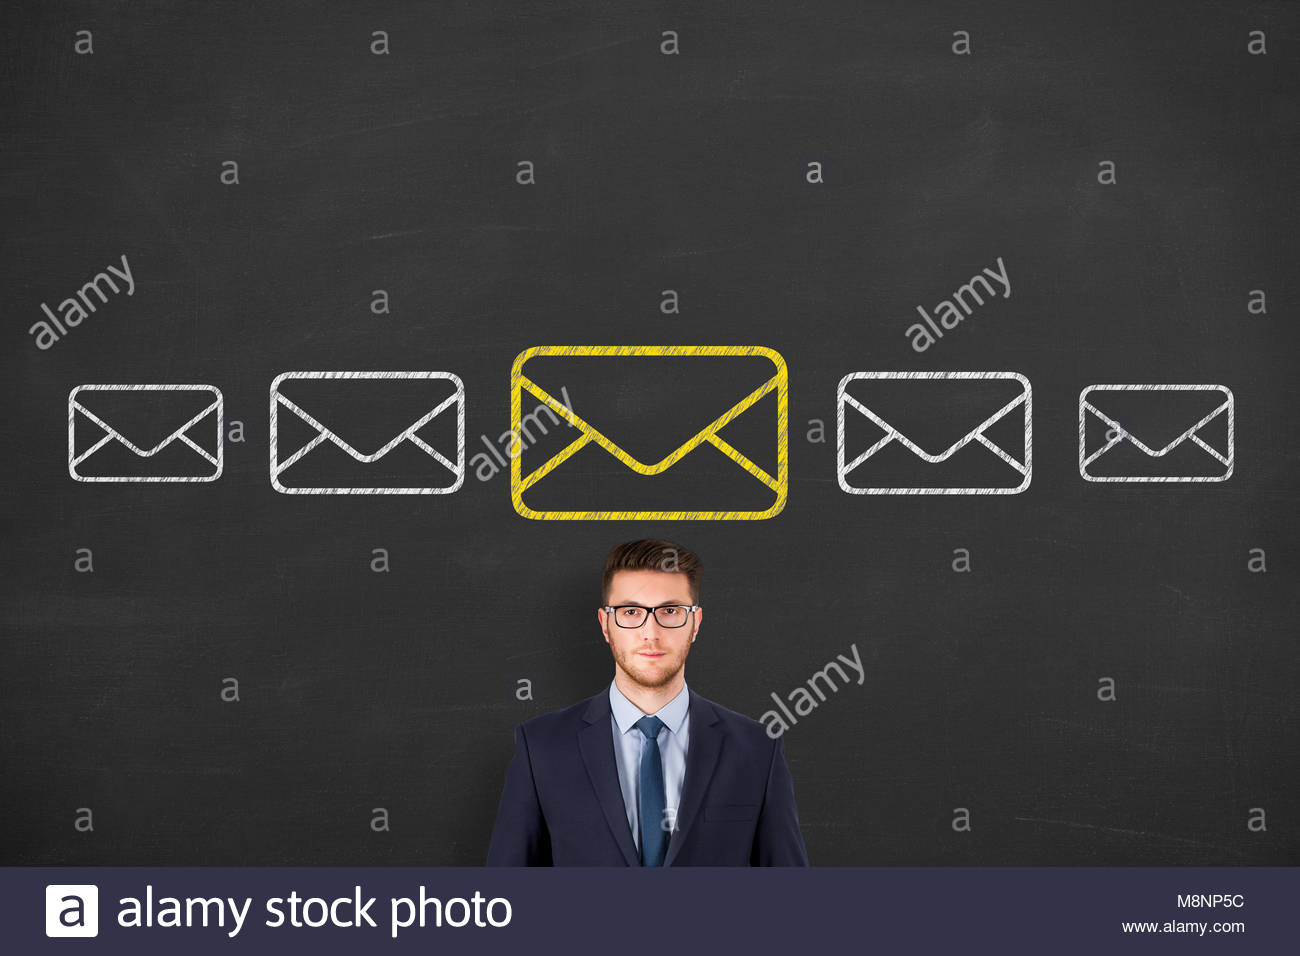 Email marketing, newsletter and bulk mail concepts on blackboard - Stock Image